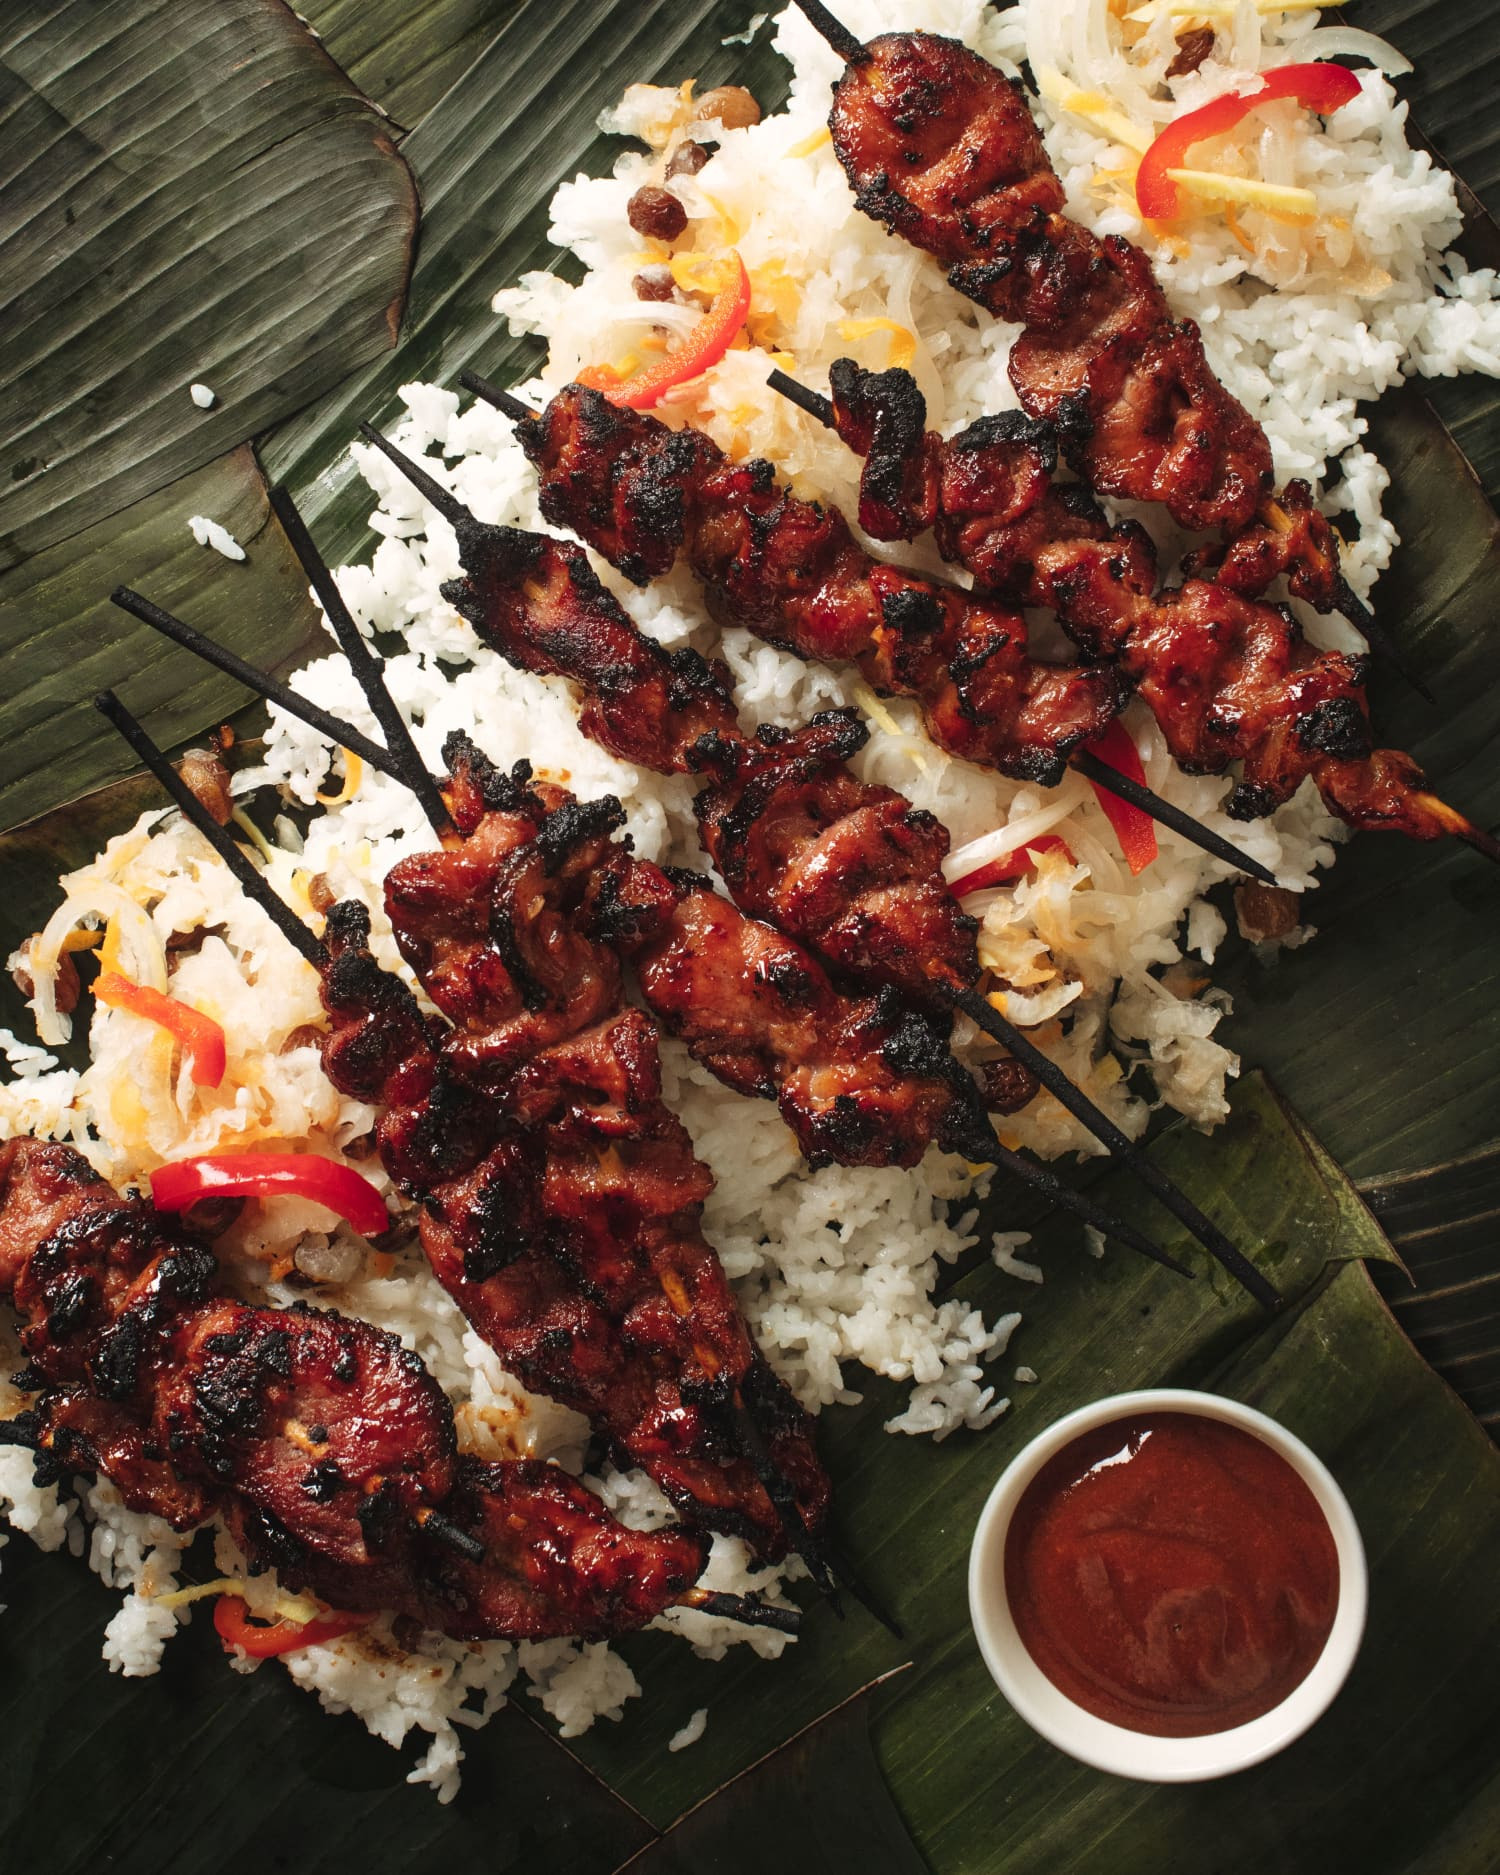 Glazed Tocino Skewers Represent the Pure Joy of the Kamayan Feast